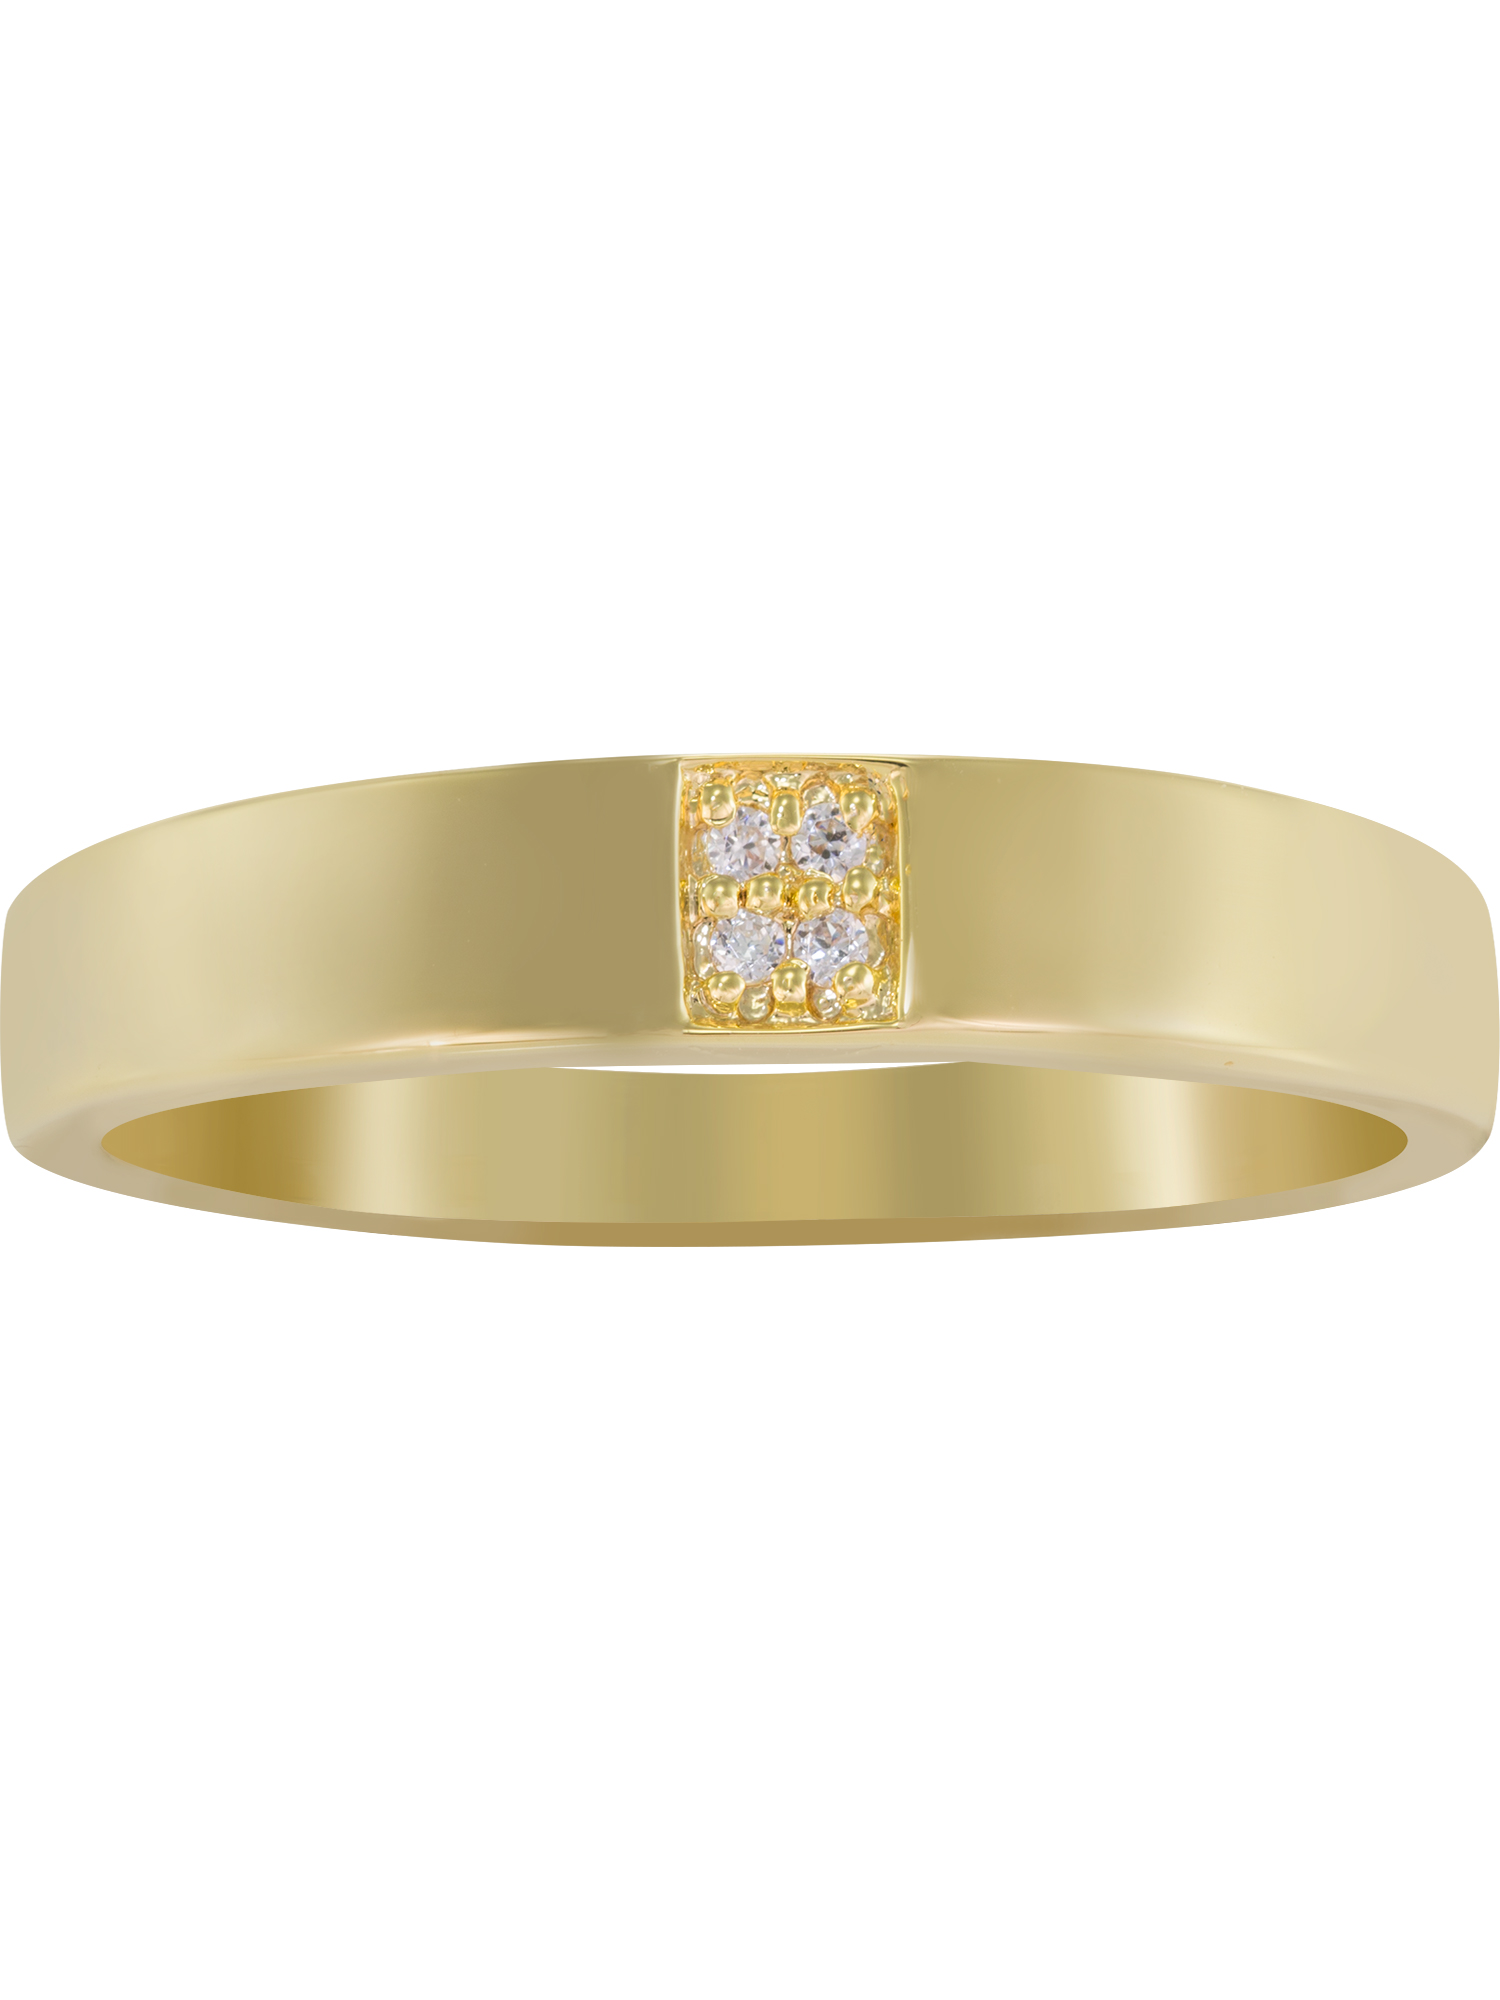 Keepsake Personalized Family JewelryWomen's Heart Match Band available in Sterling Silver, Gold and White Gold